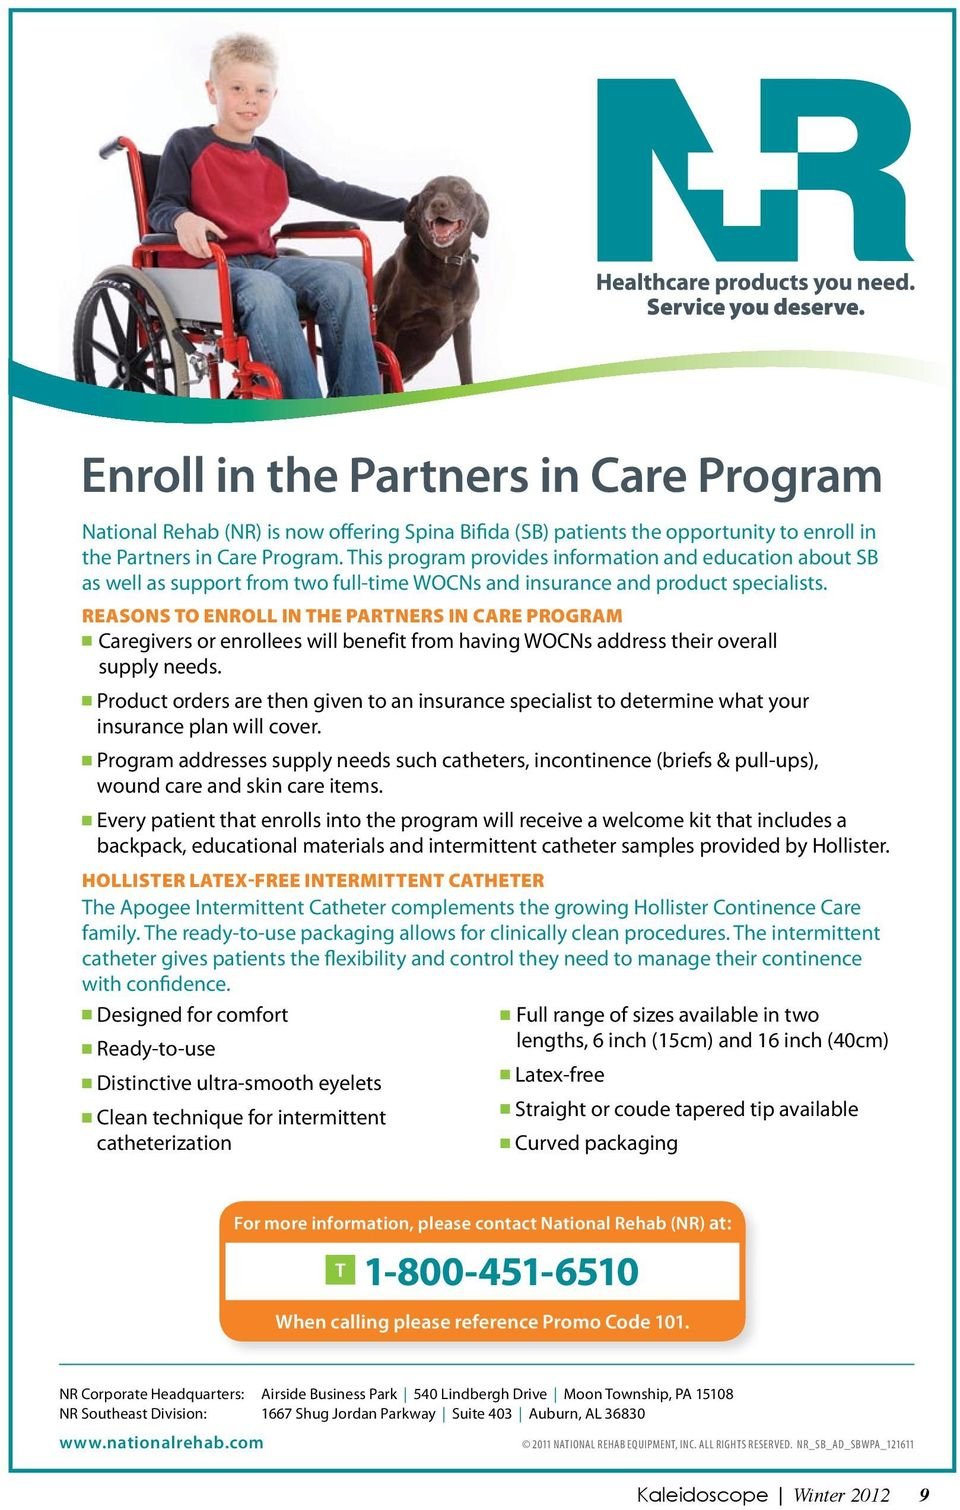 REASONS TO ENROLL IN THE PARTNERS IN CARE PROGRAM Caregivers or enrollees will benefit from having WOCNs address their overall supply needs.